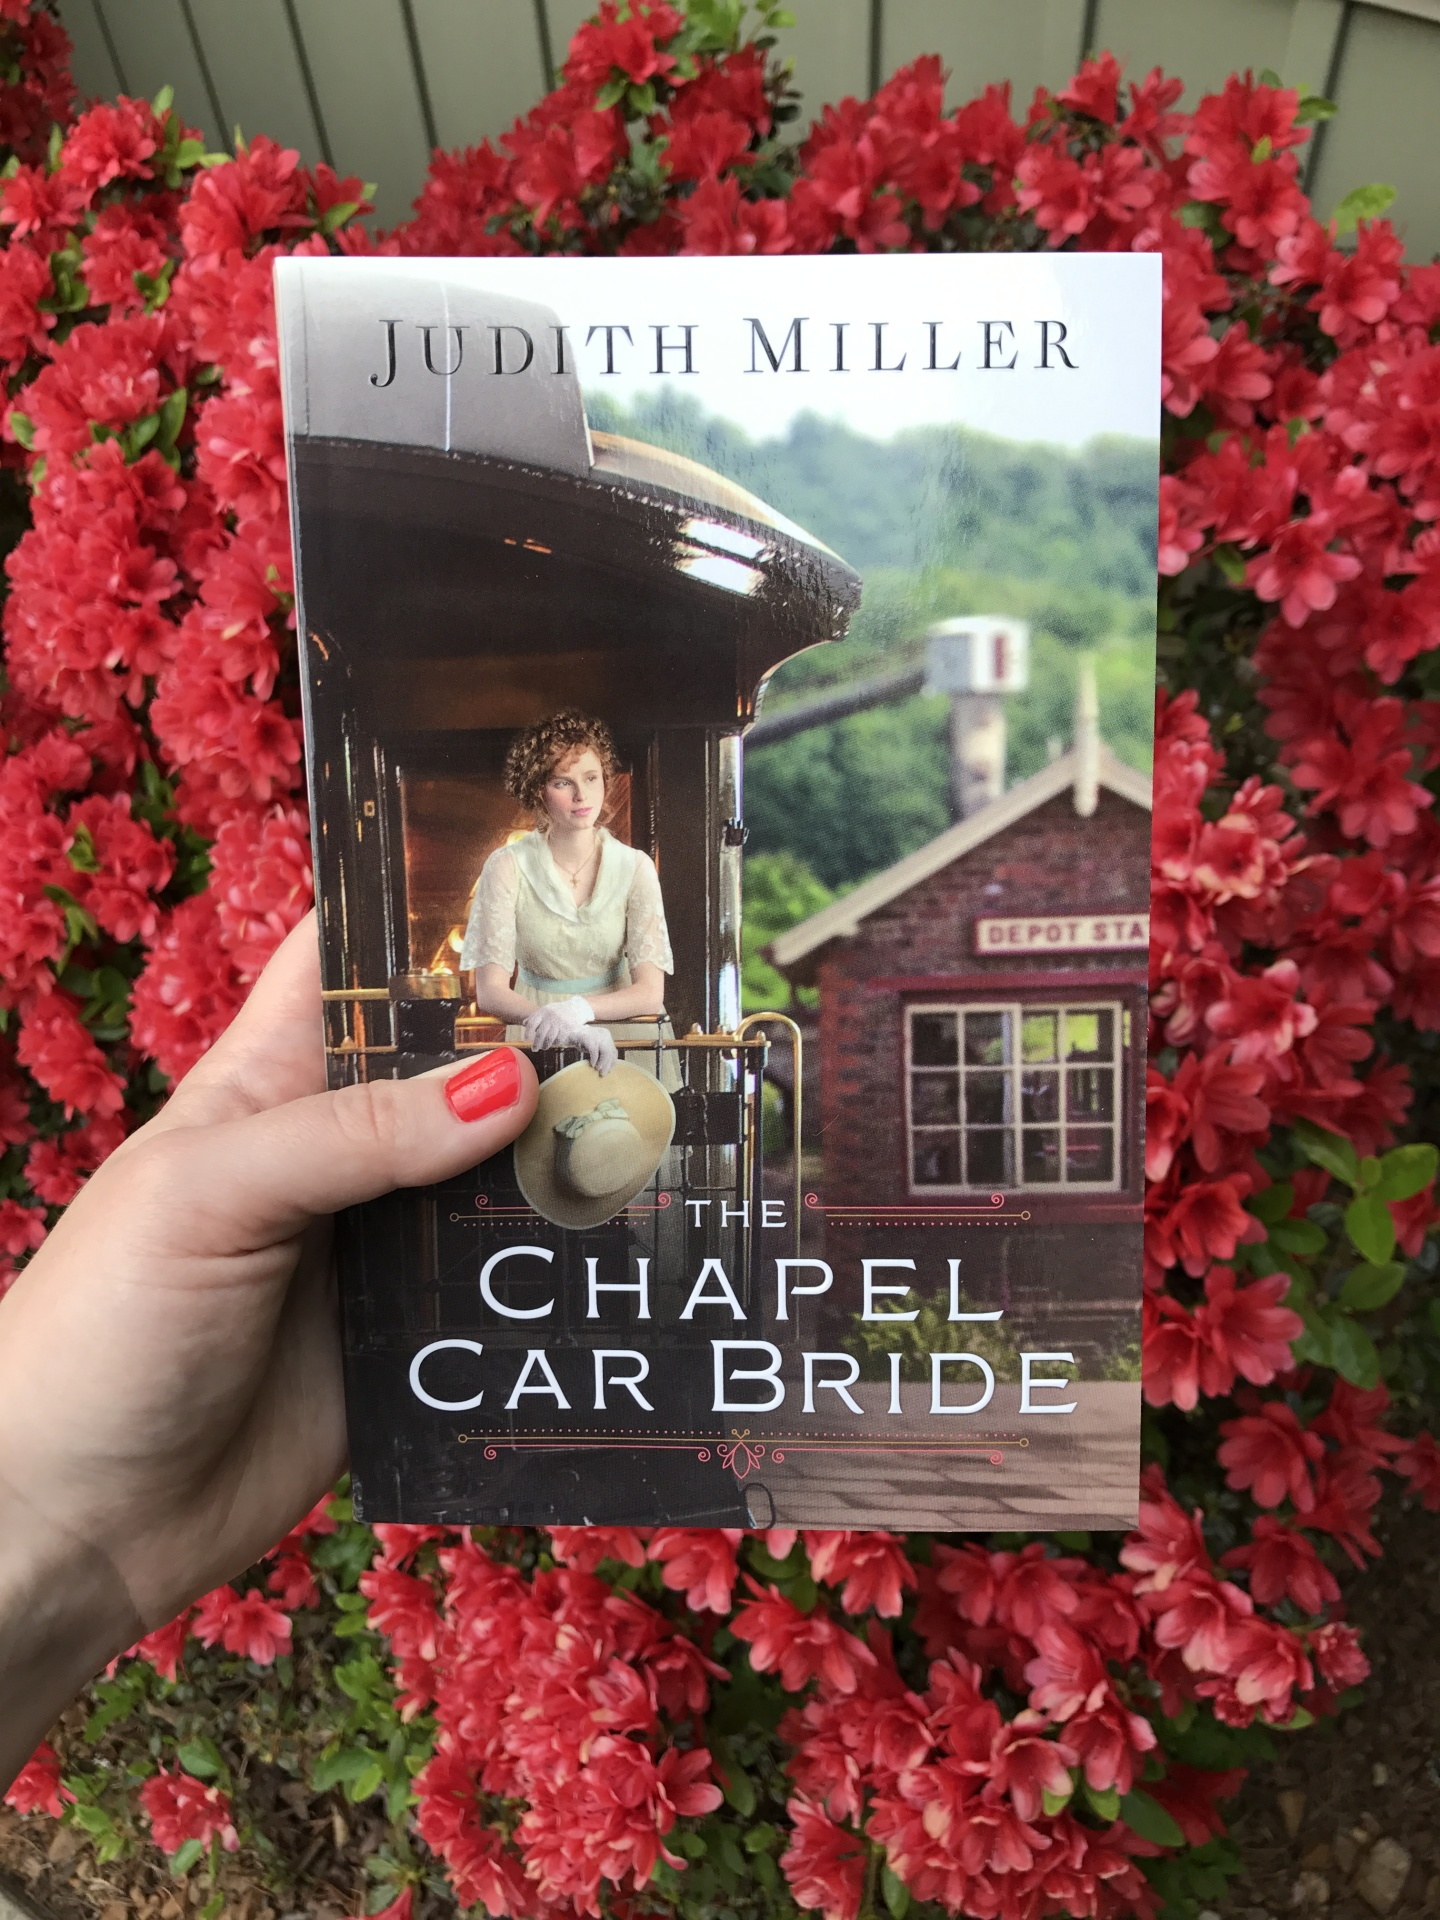 The Chapel Car Bride